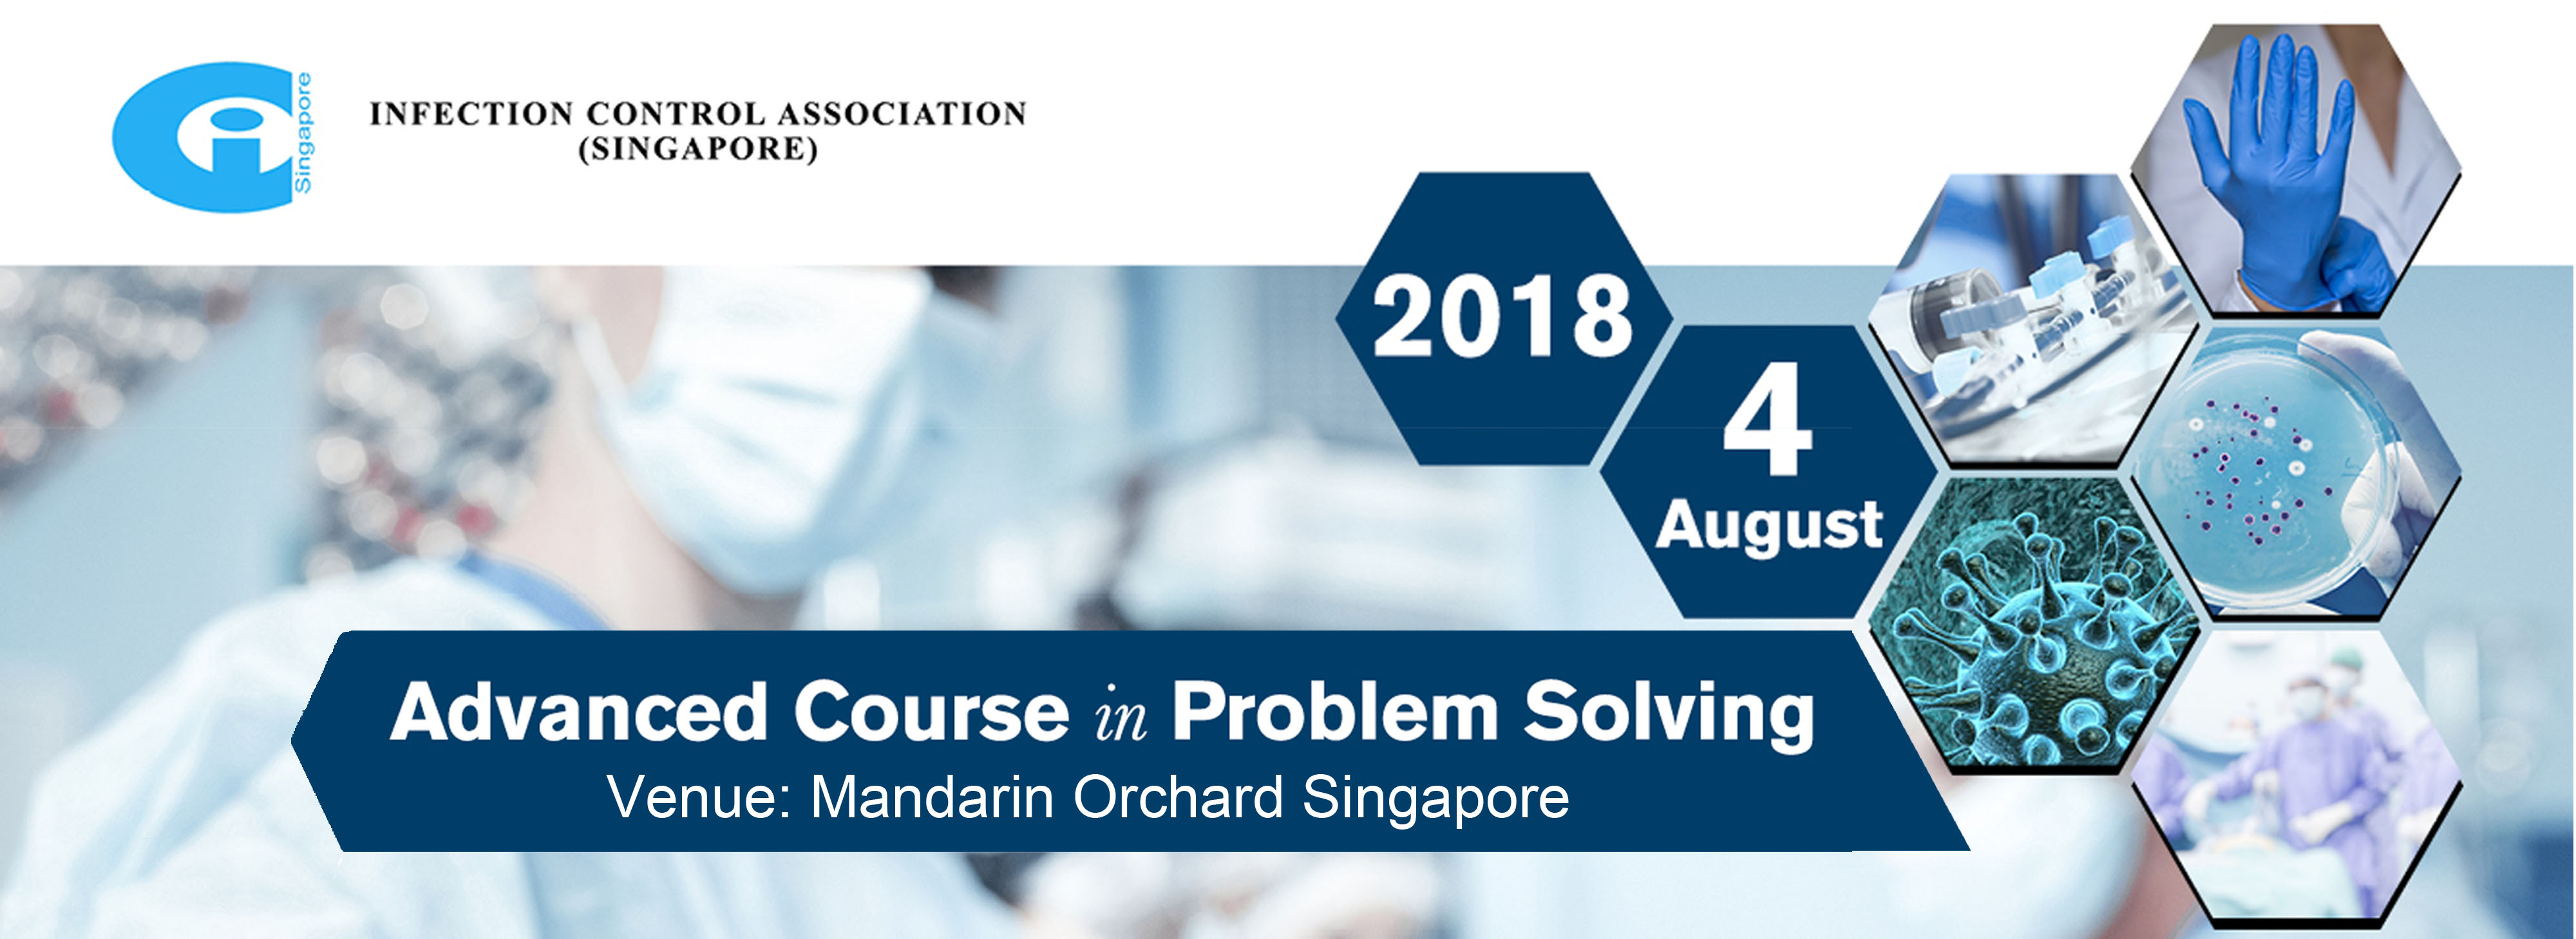 Advanced Course in Problem Solving